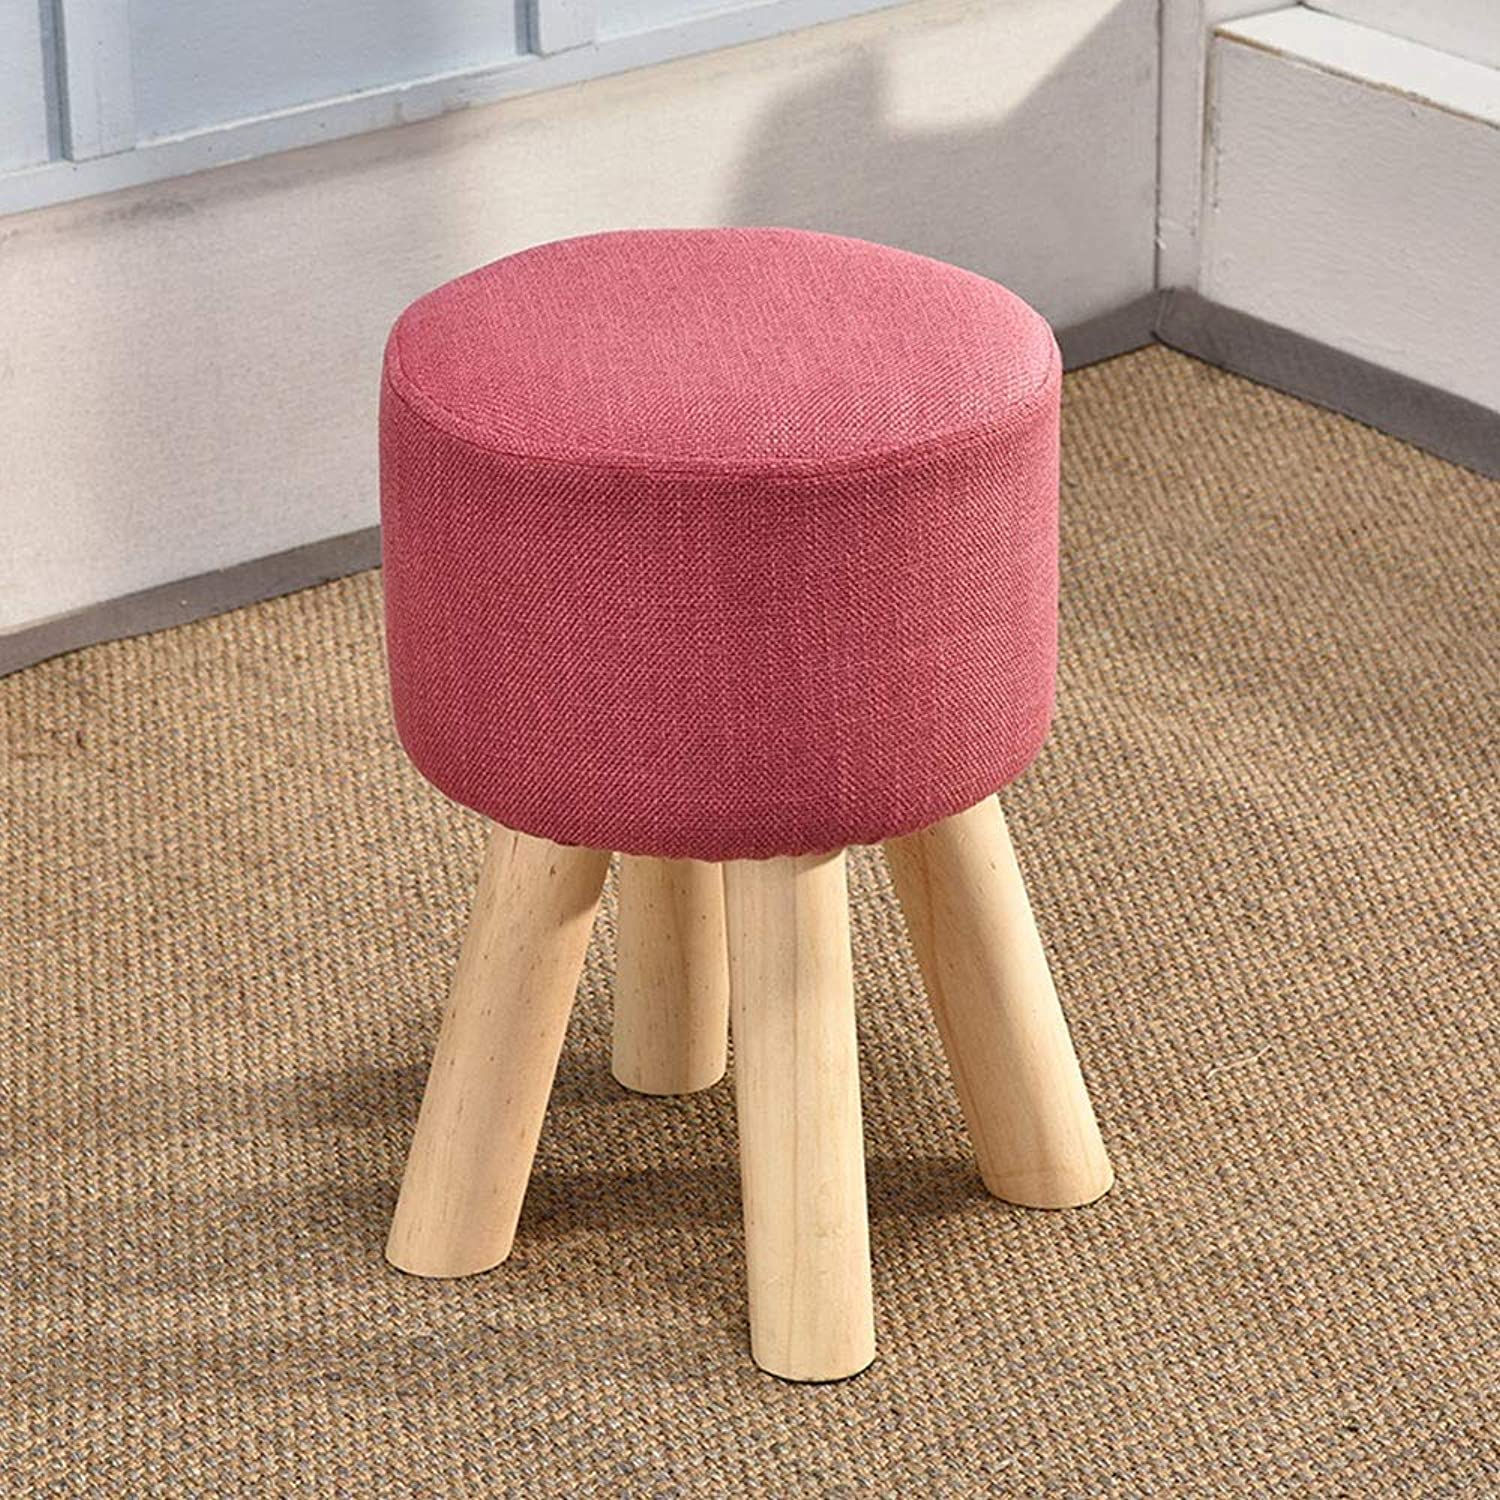 DEI QI Solid Wood Home Heightening Stool Creative Living Room Change shoes Stool Fashion Adult Stool Fabric Sofa Bench Bench (color   Red)